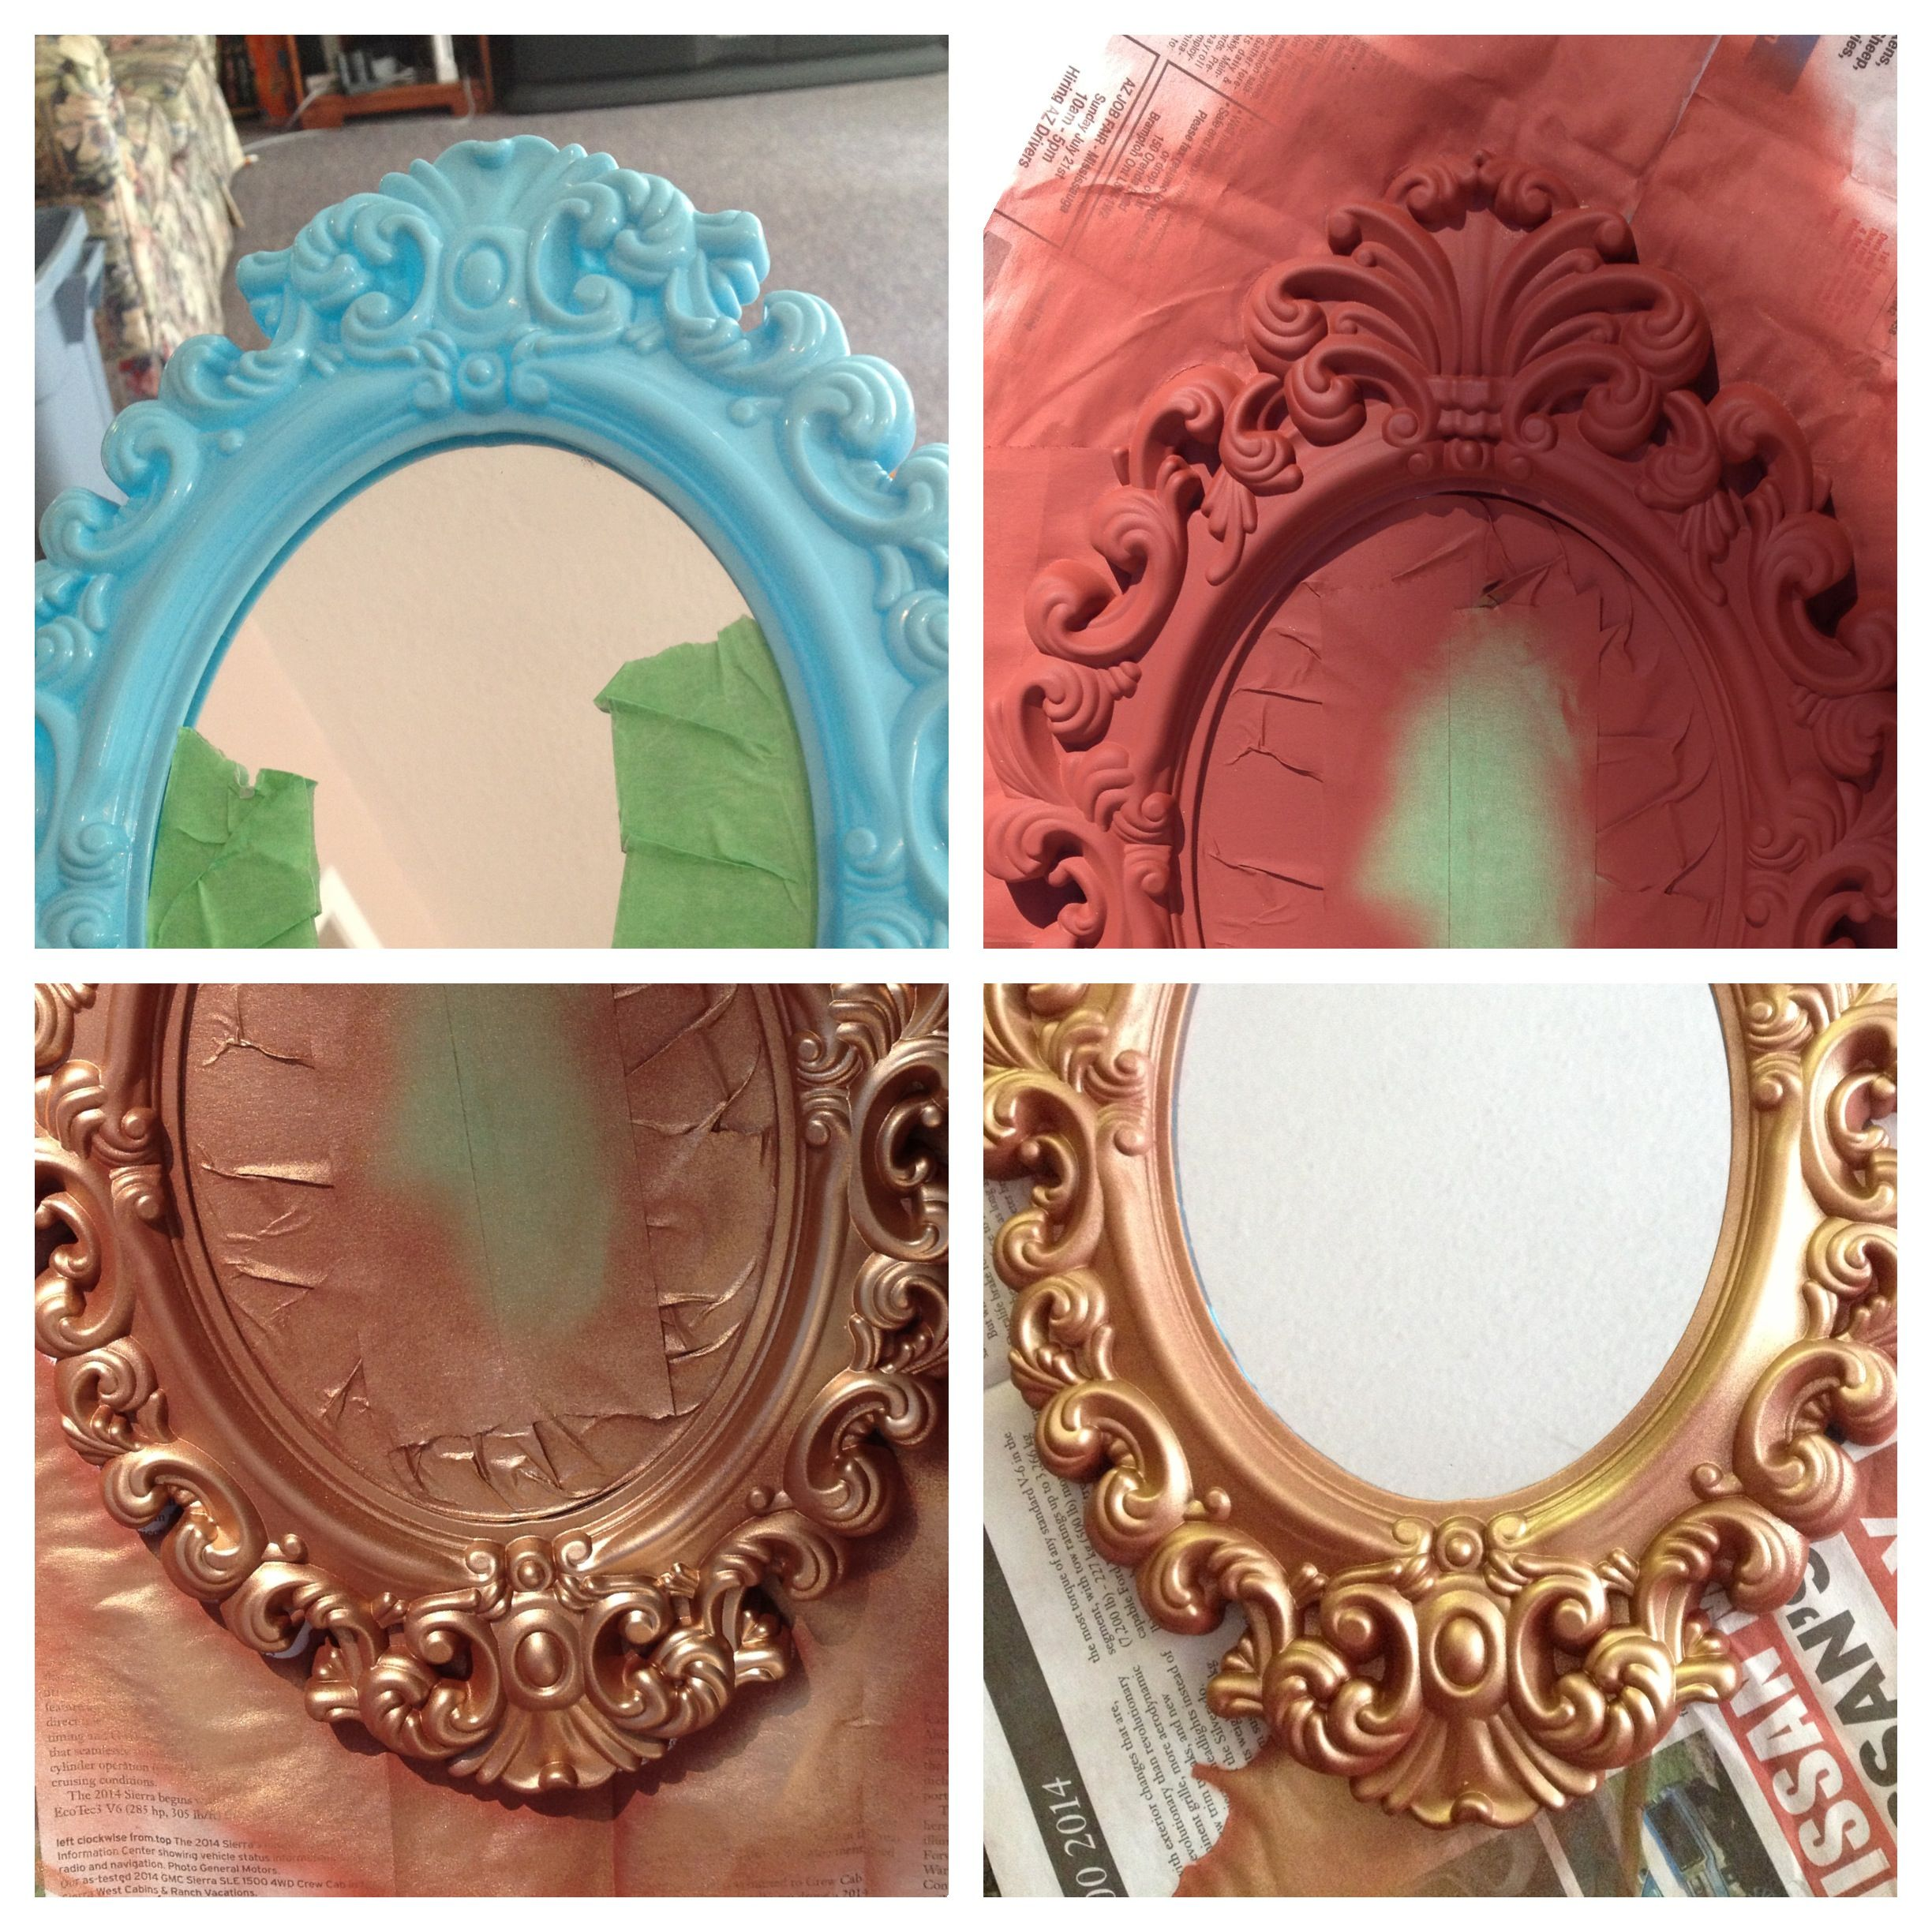 Cheap mirror project 1 buy dollar store mirror 2 spray with matte base coat of your choice for Cheapest place to buy interior paint